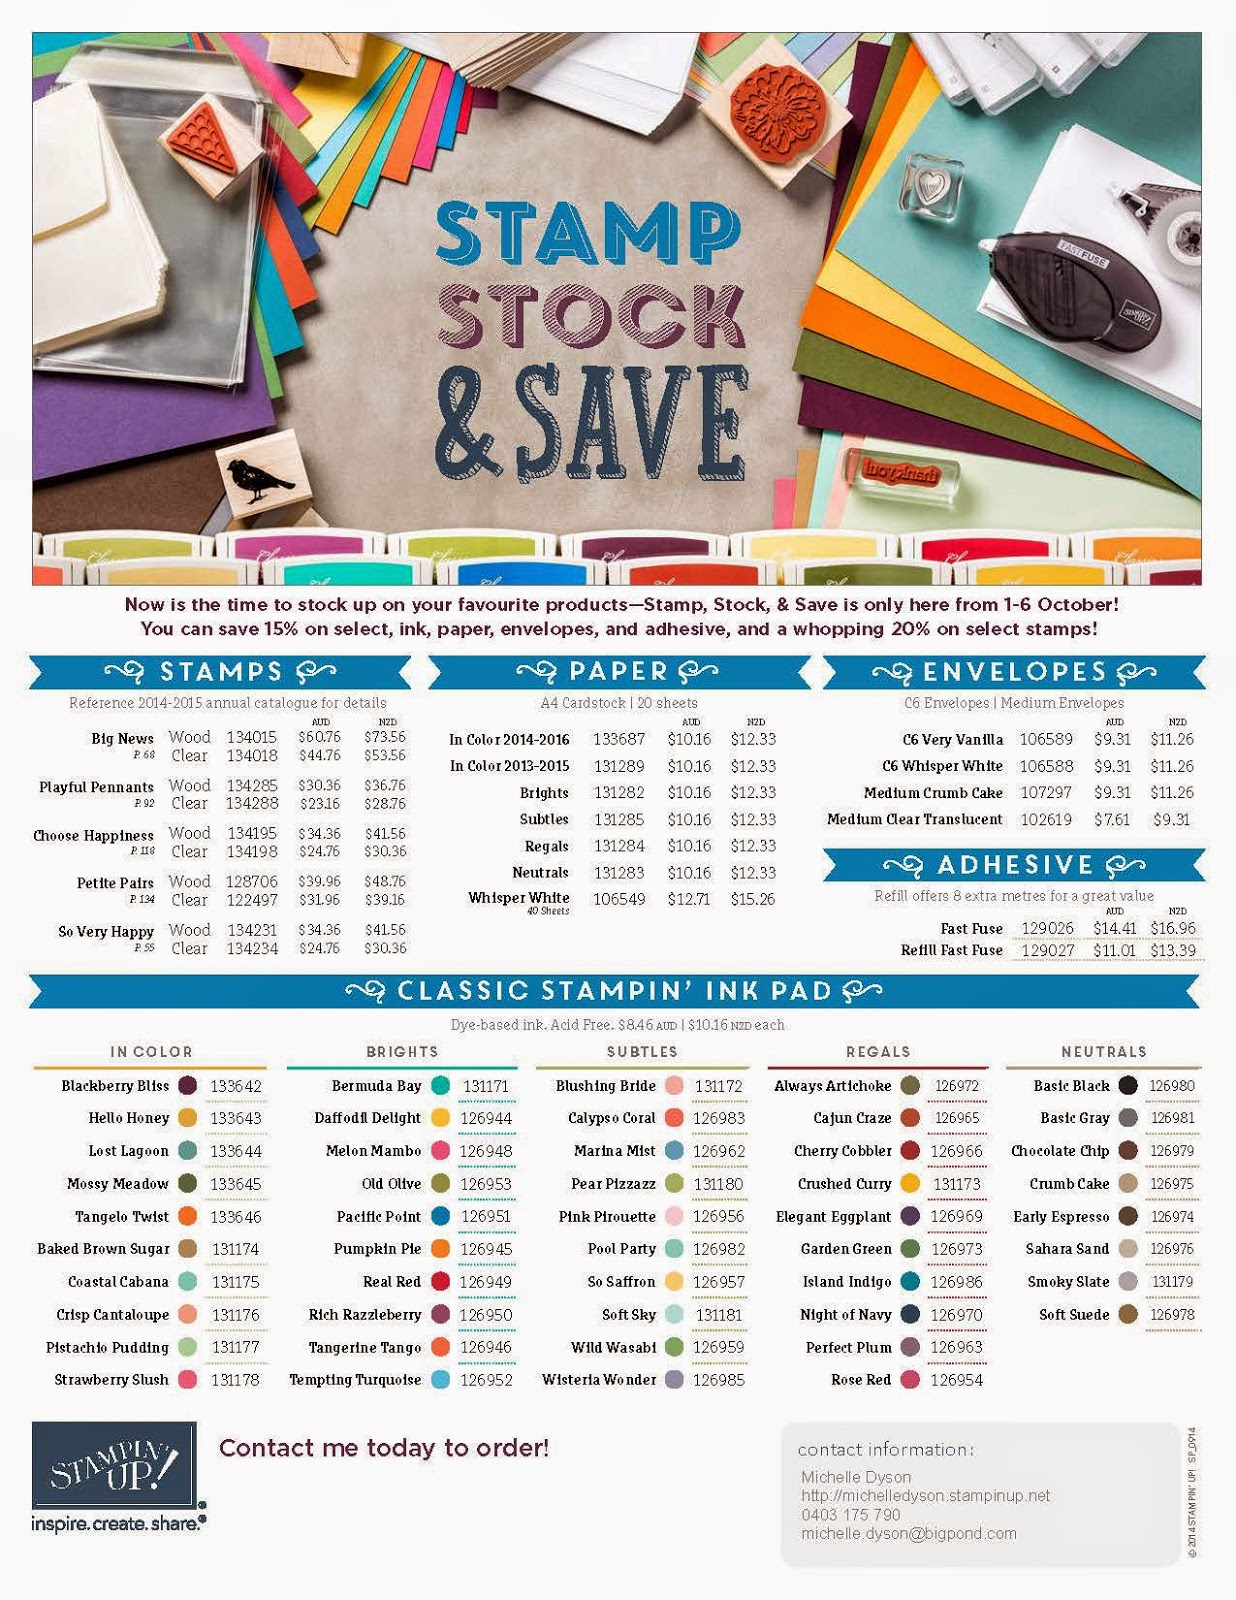 http://www.stampinup.net/esuite/home/michelledyson/promotions